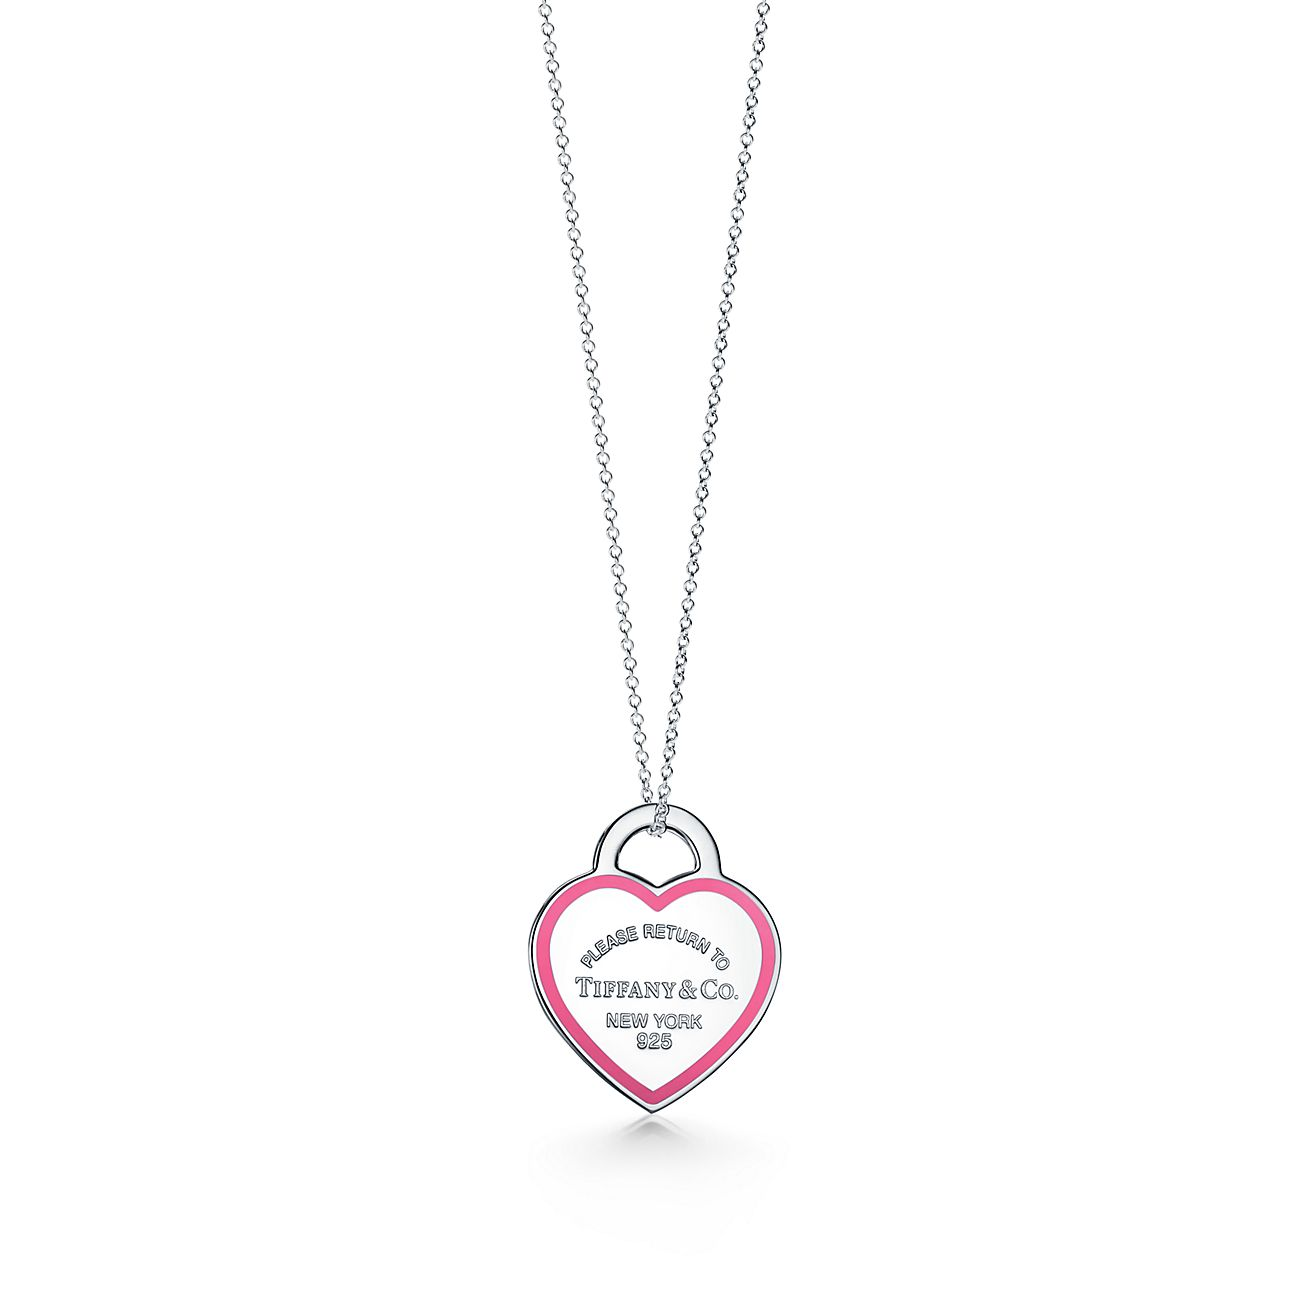 Return To Tiffany Heart Tag Pendant In Sterling Silver With Pink Enamel Finish Tiffany Co